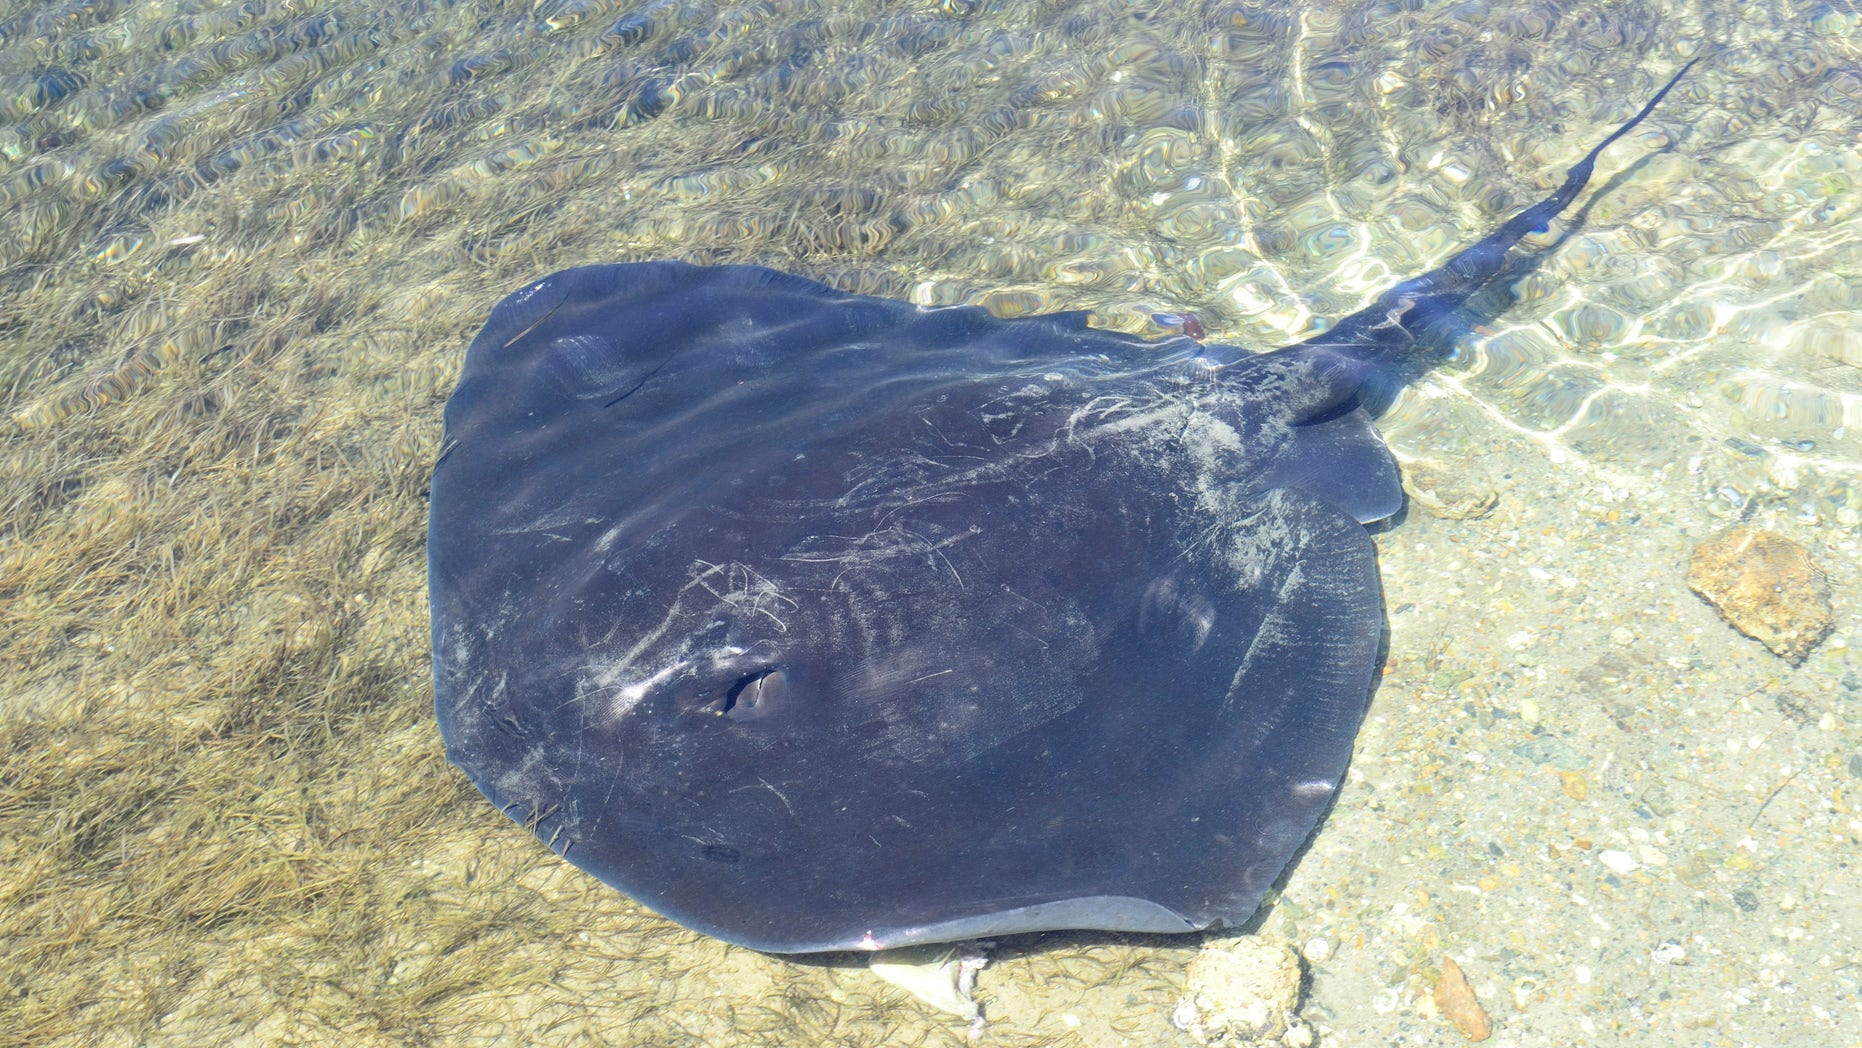 Swimmer Dies off Tasmania After Apparent Stingray Attack